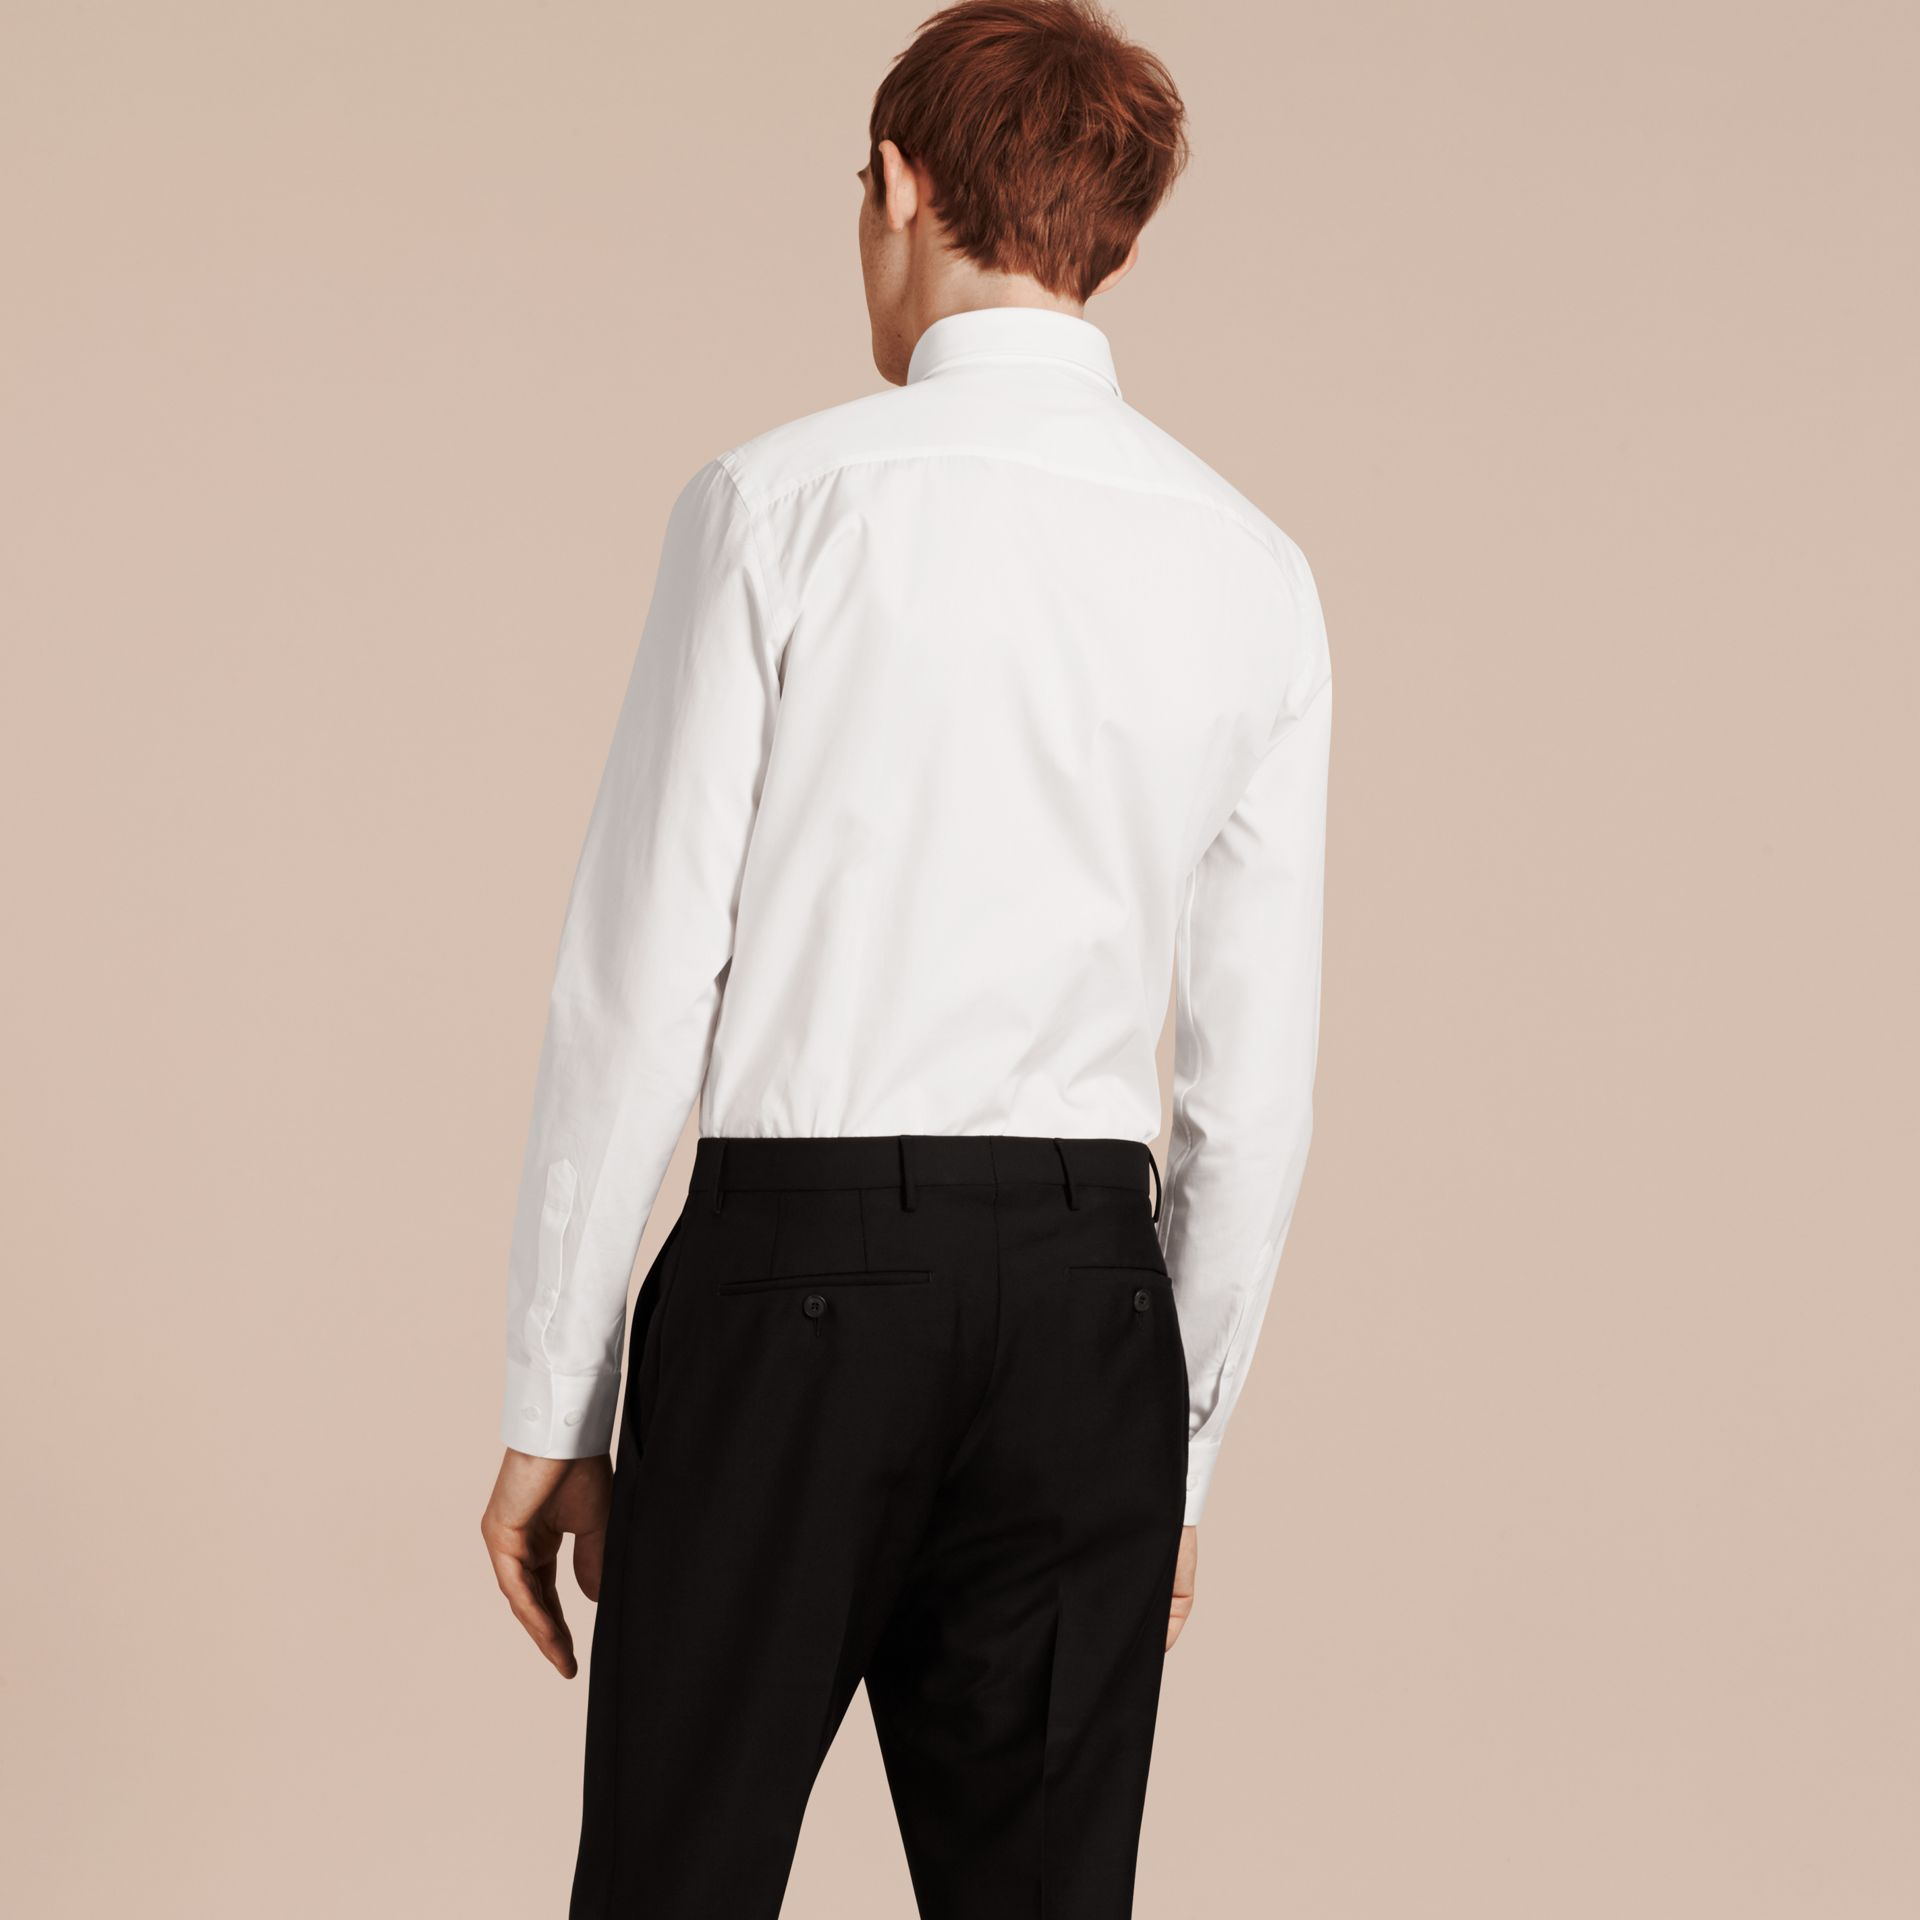 Slim Fit Cotton Poplin Shirt in White - Men | Burberry Singapore - gallery image 3